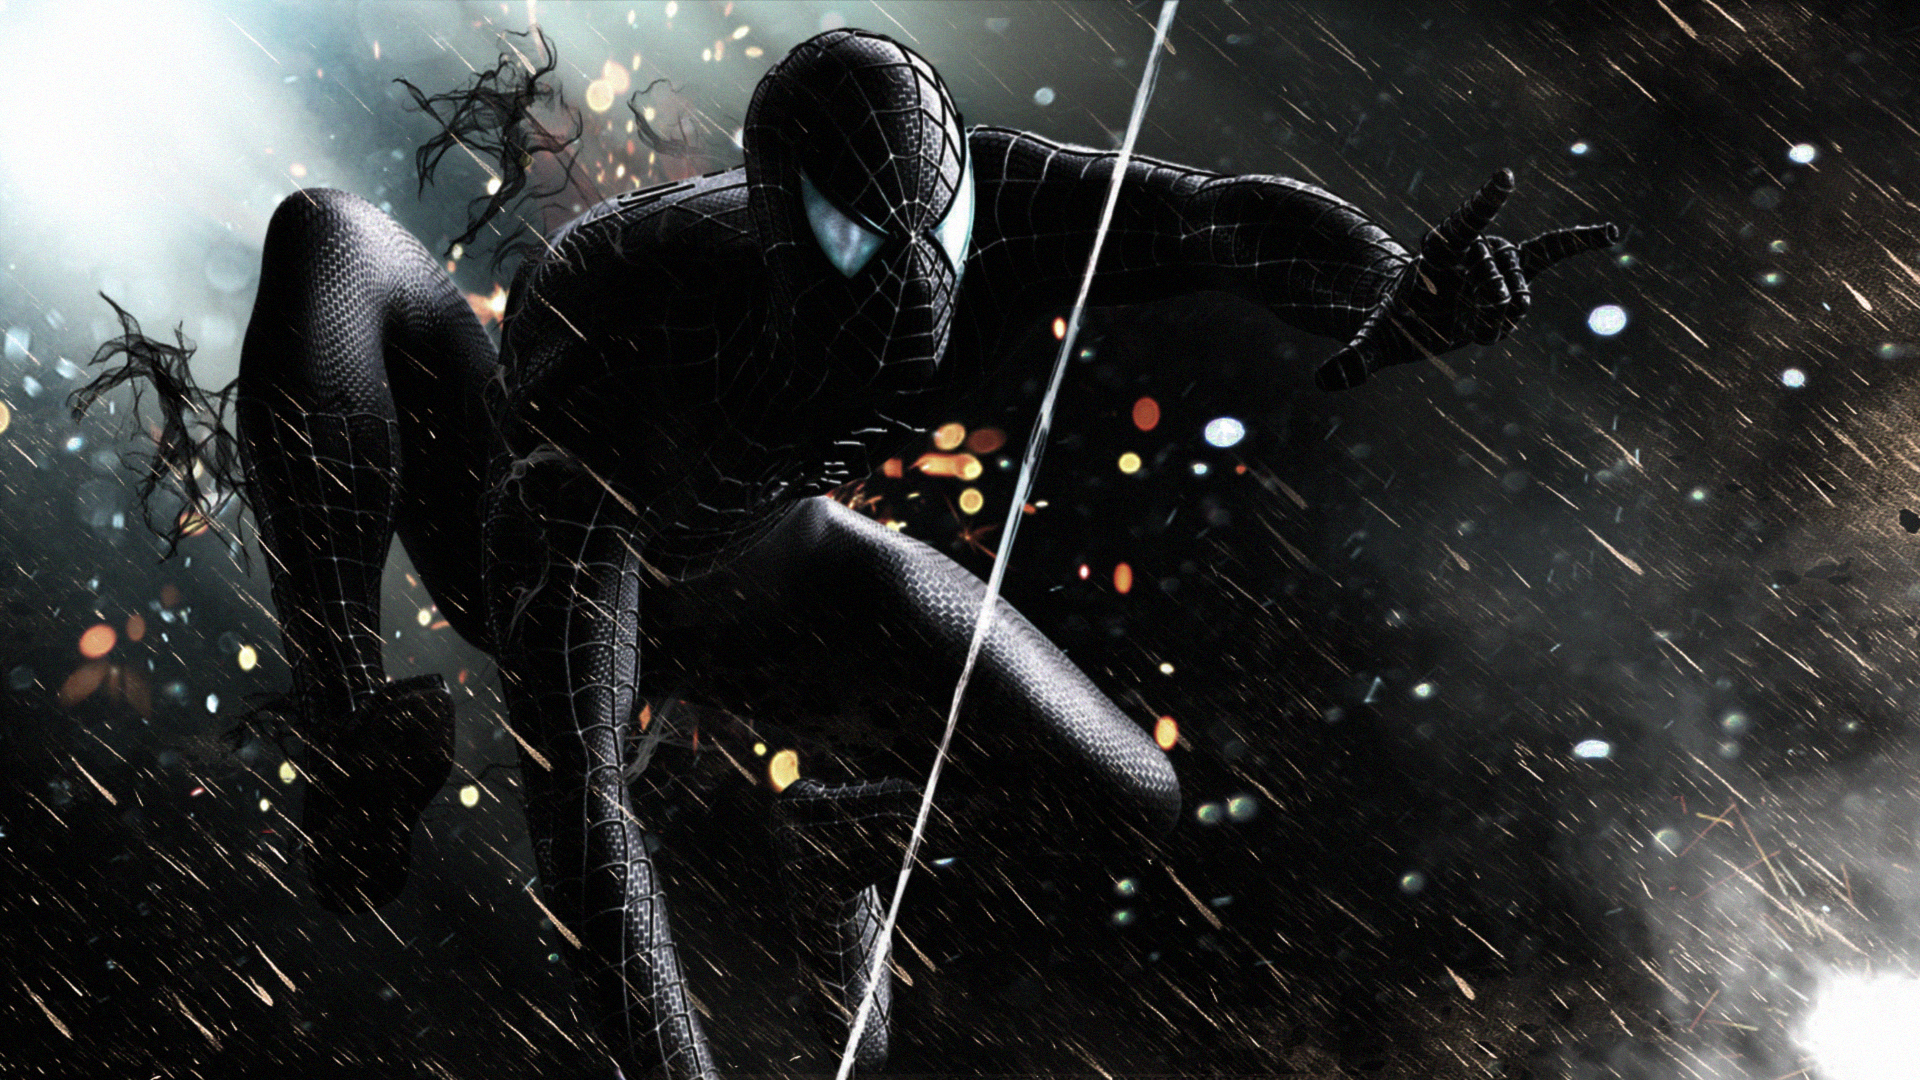 Black Spiderman Hd Superheroes 4k Wallpapers Images Backgrounds